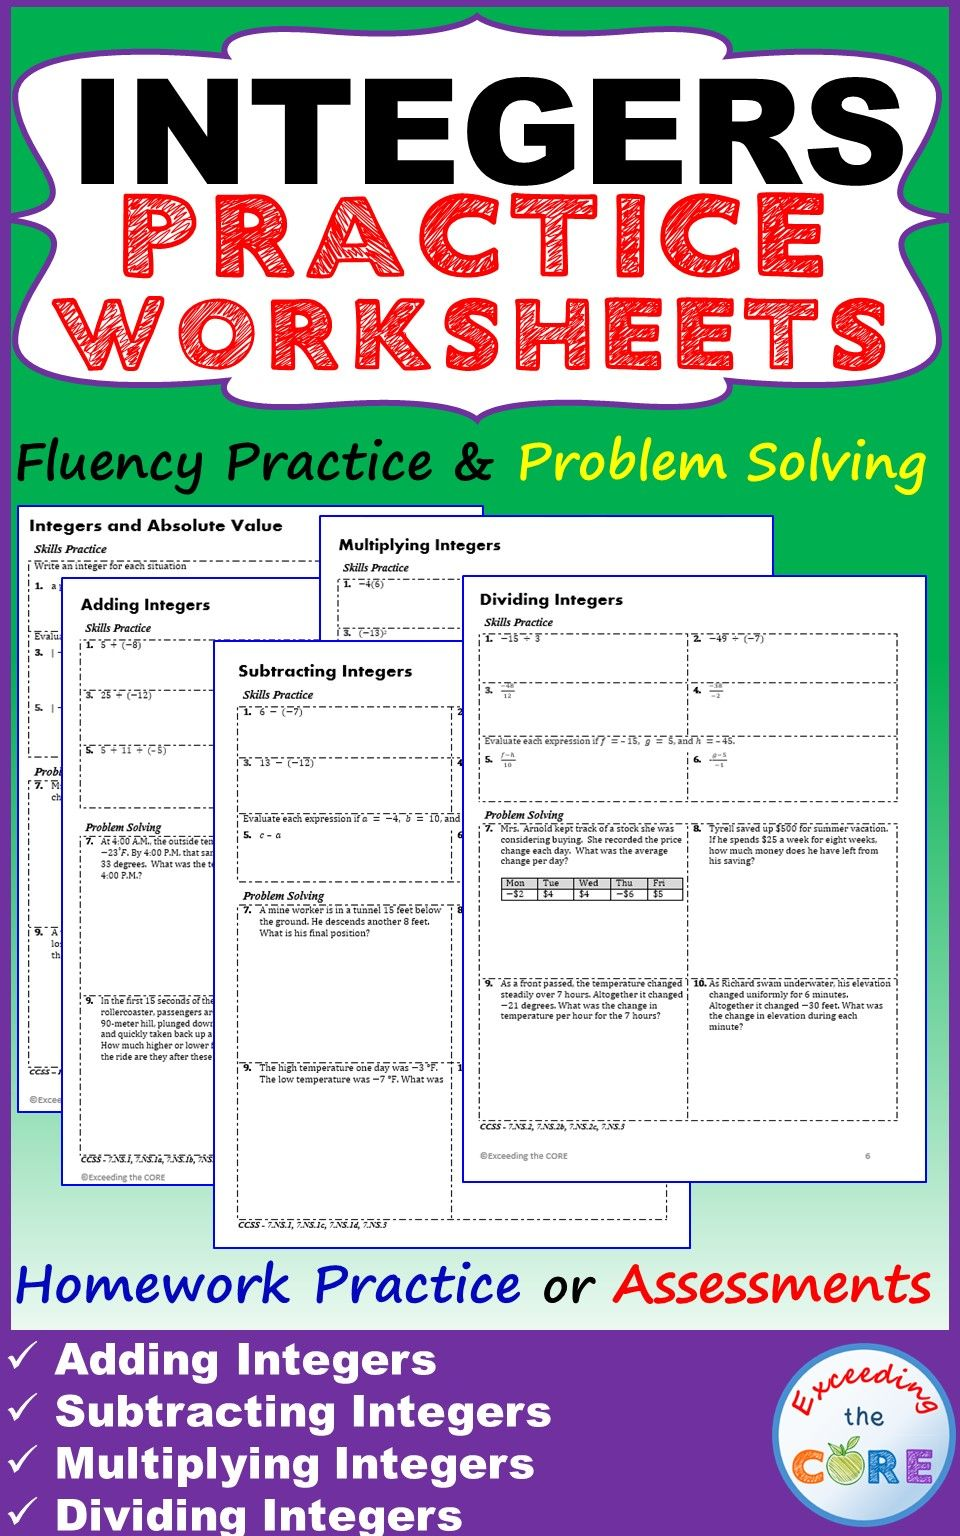 hight resolution of INTEGERS Homework Practice Worksheets - Skills Practice with Word Problems  ~ 5 INTEGER practice worksheets (50 qu…   Integers word problems